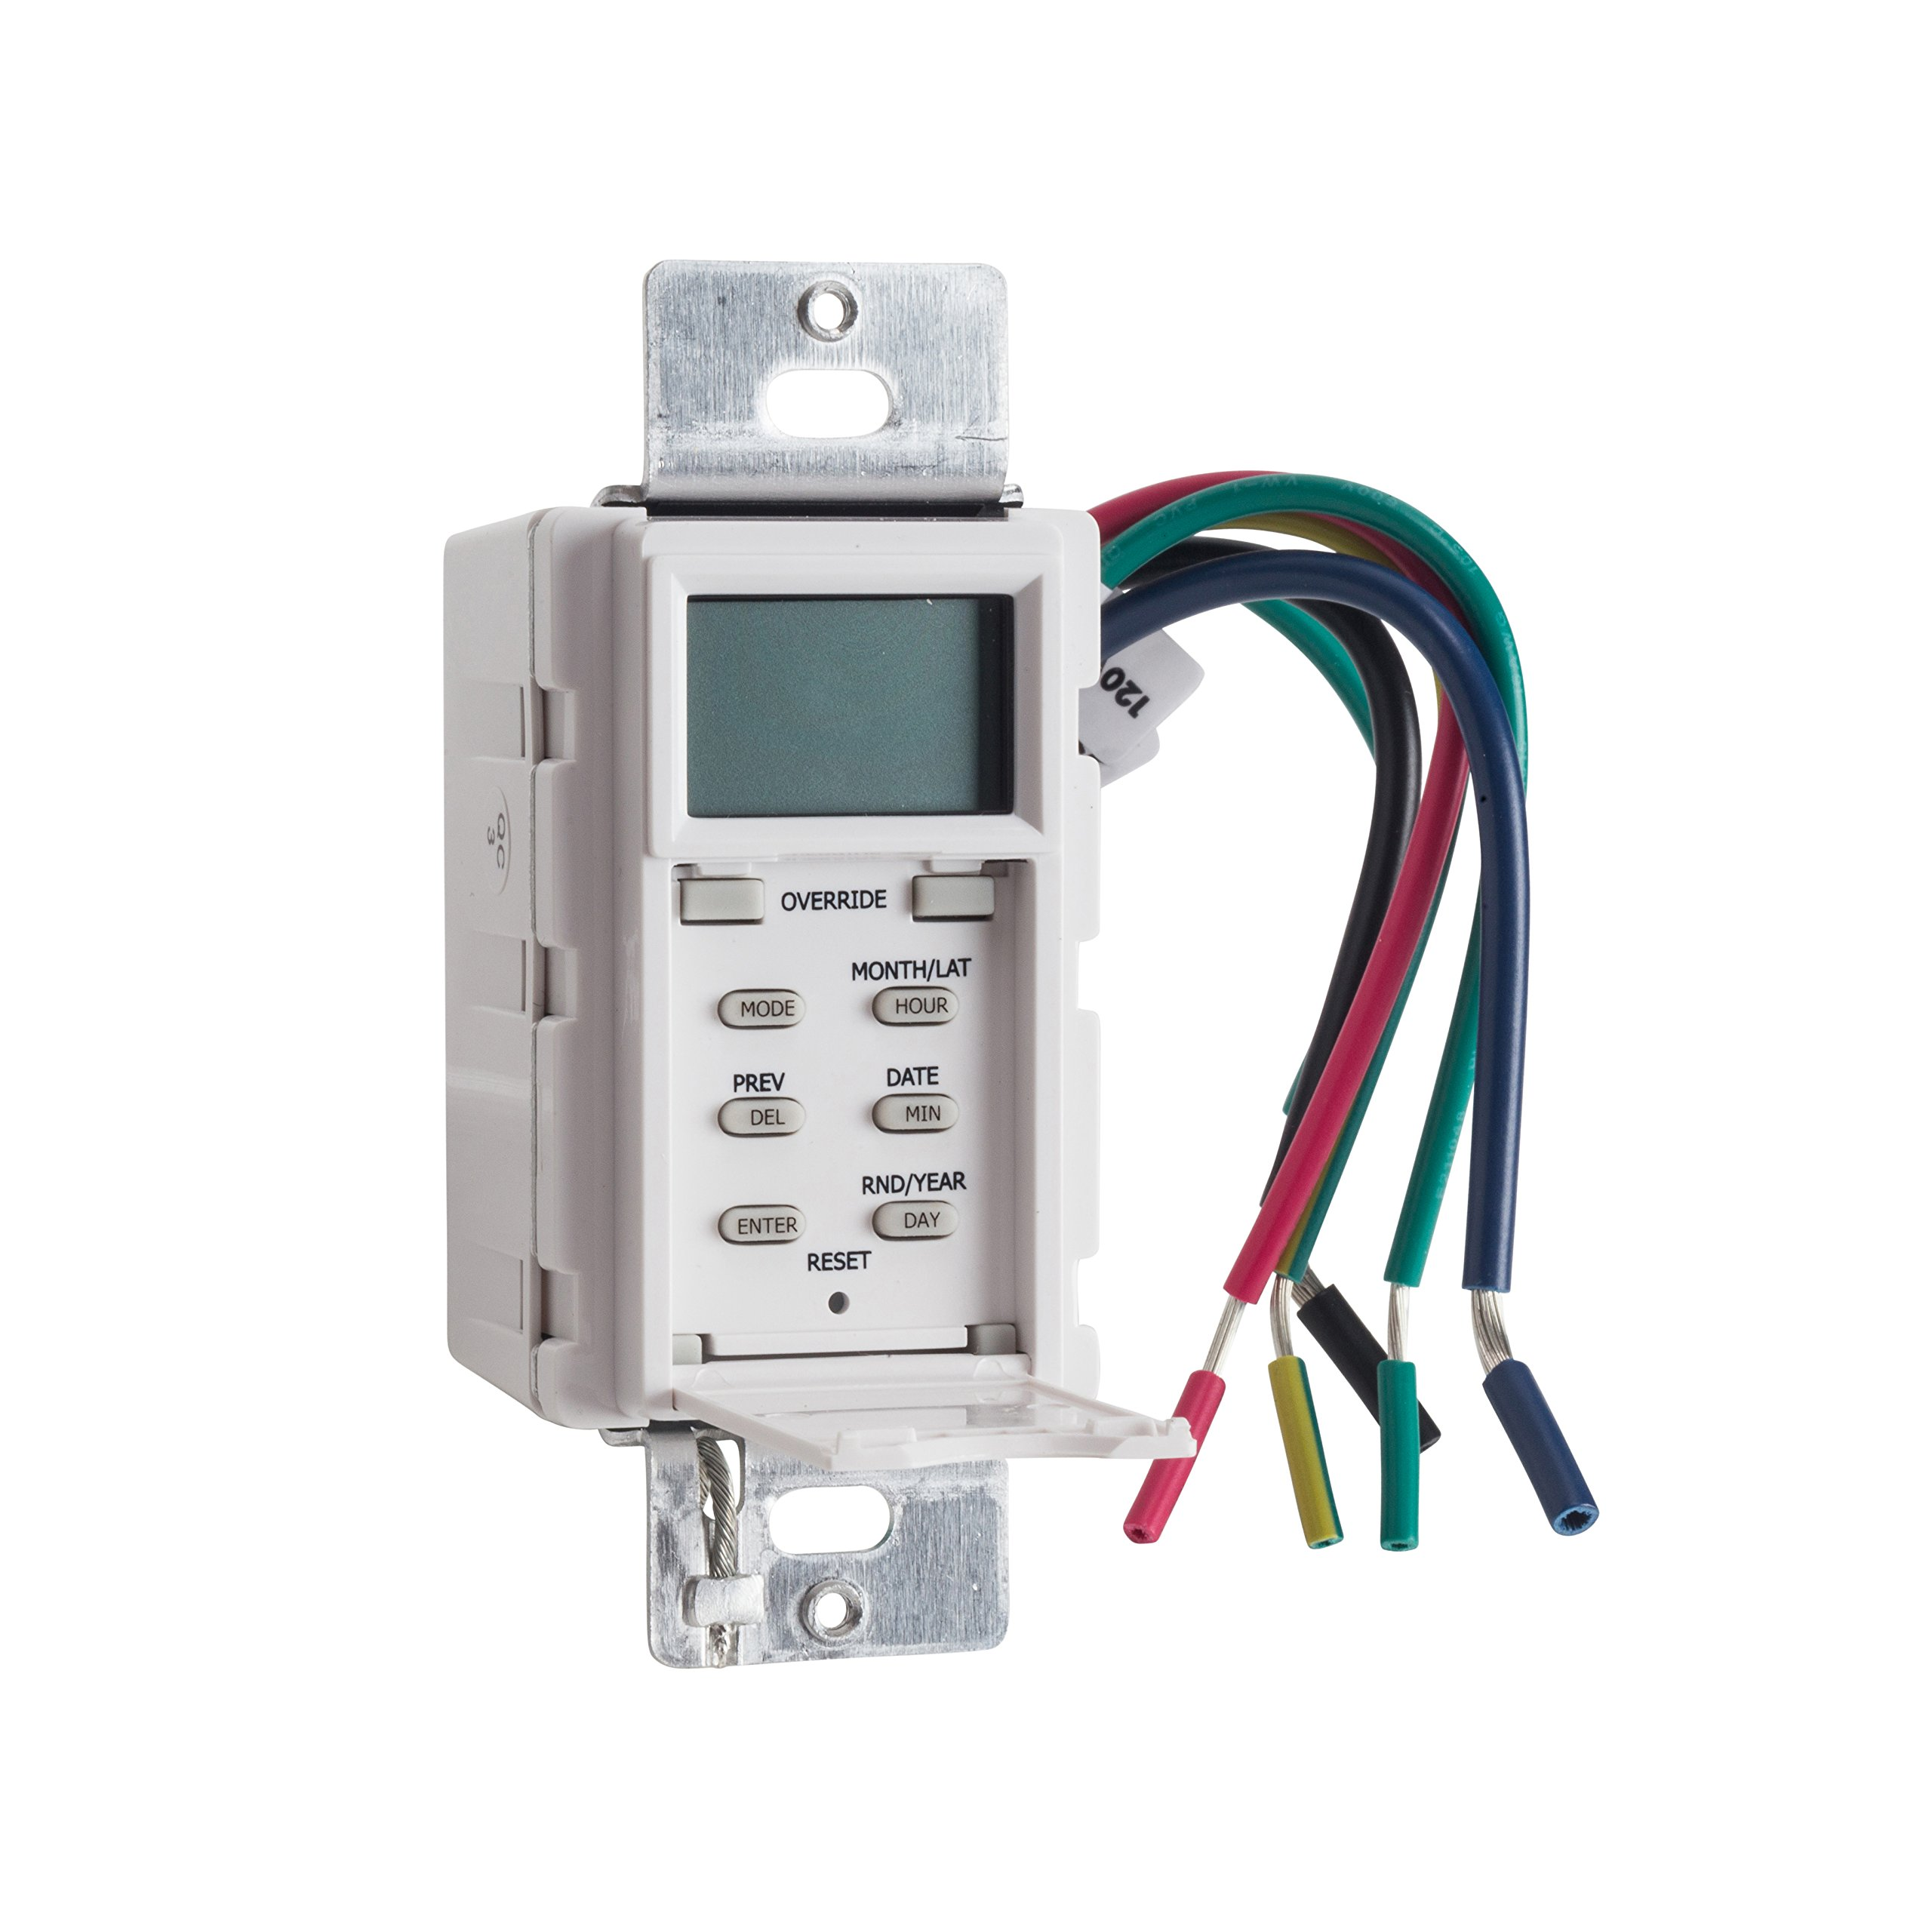 NSi Industries LLC SS703Z 7 Day 120/277V Digital in-Wall Timer by NSI